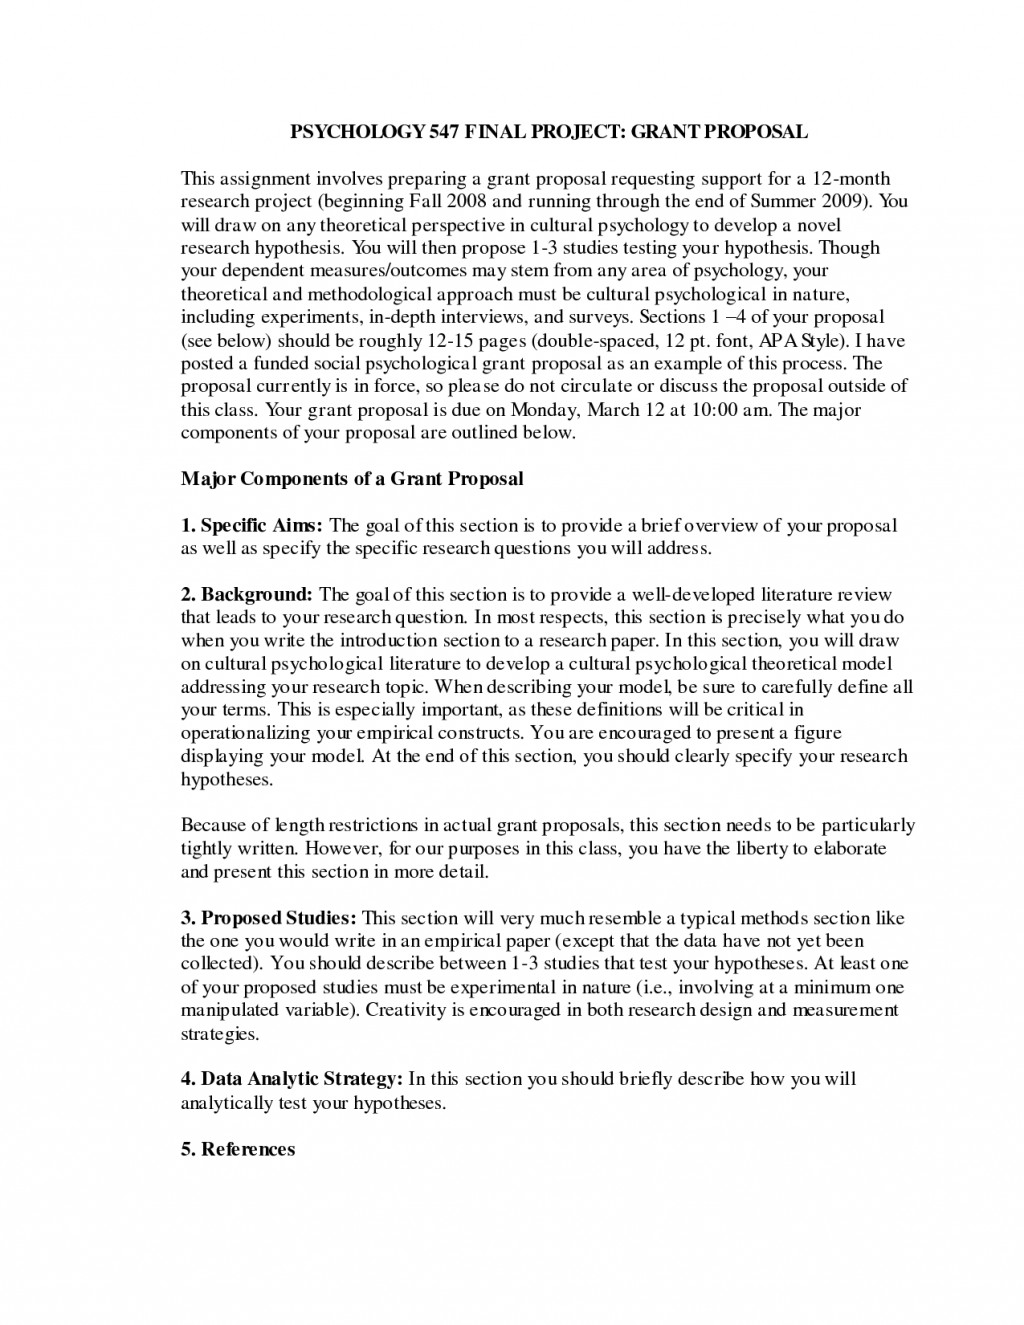 004 Apa Research Paper Proposal Sample Style 501349 Marvelous Example Large